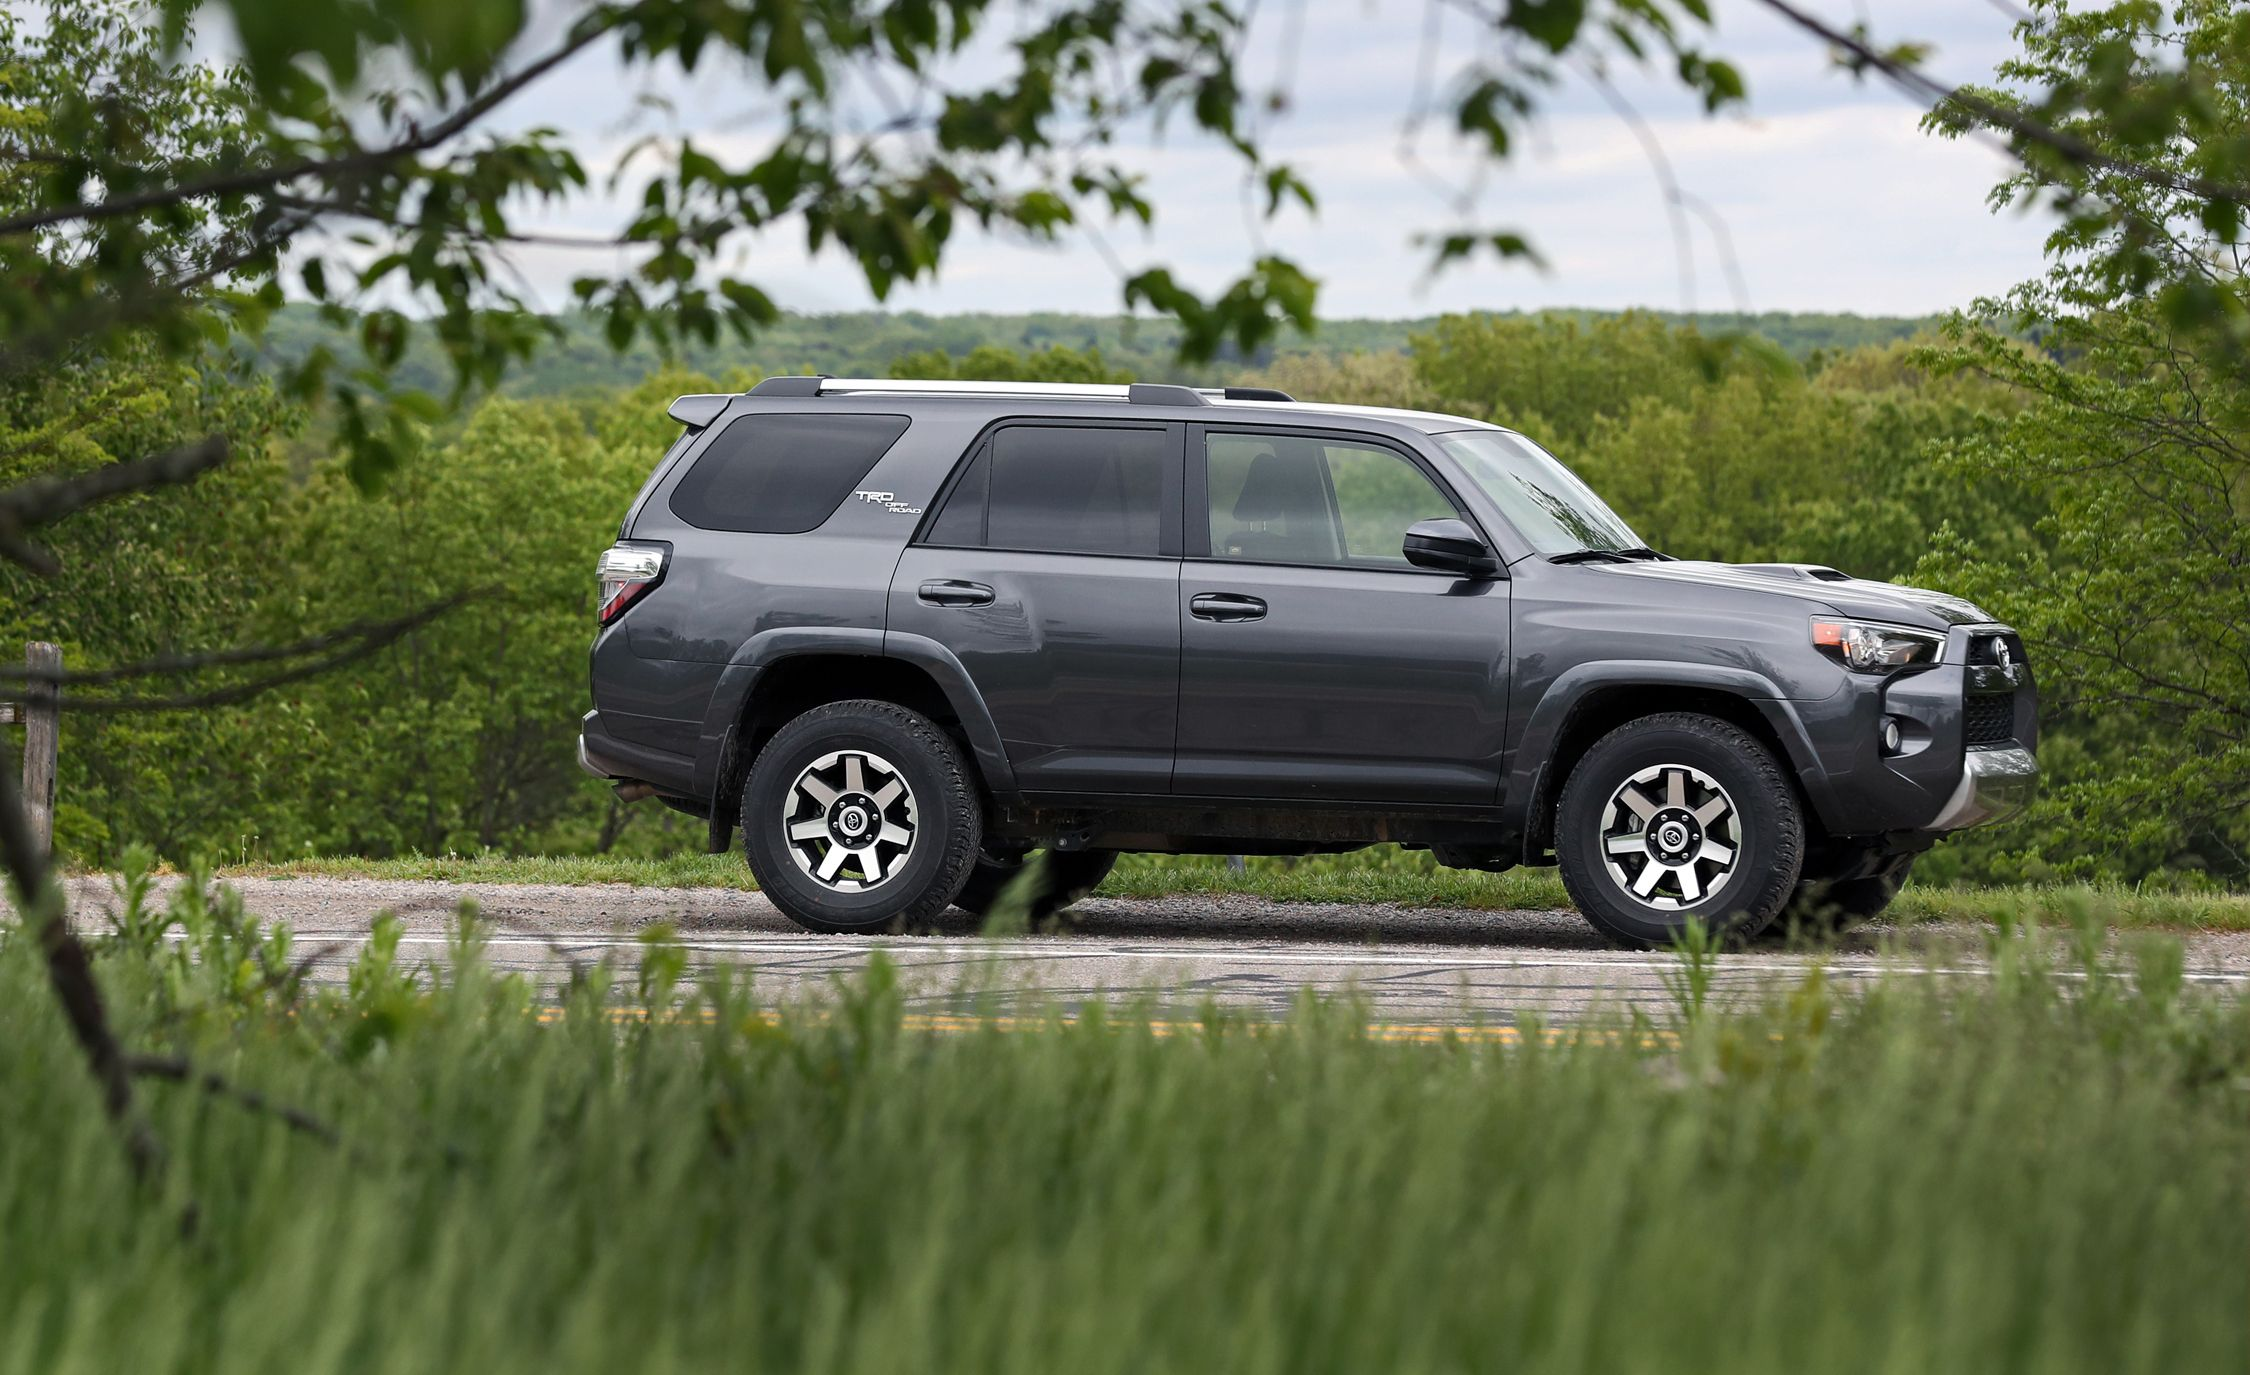 2018 Toyota 4runner In Depth Model Review Car And Driver Rh Caranddriver  Com 2002 Toyota 4Runner 2008 Toyota 4runner Owners Manual Pdf